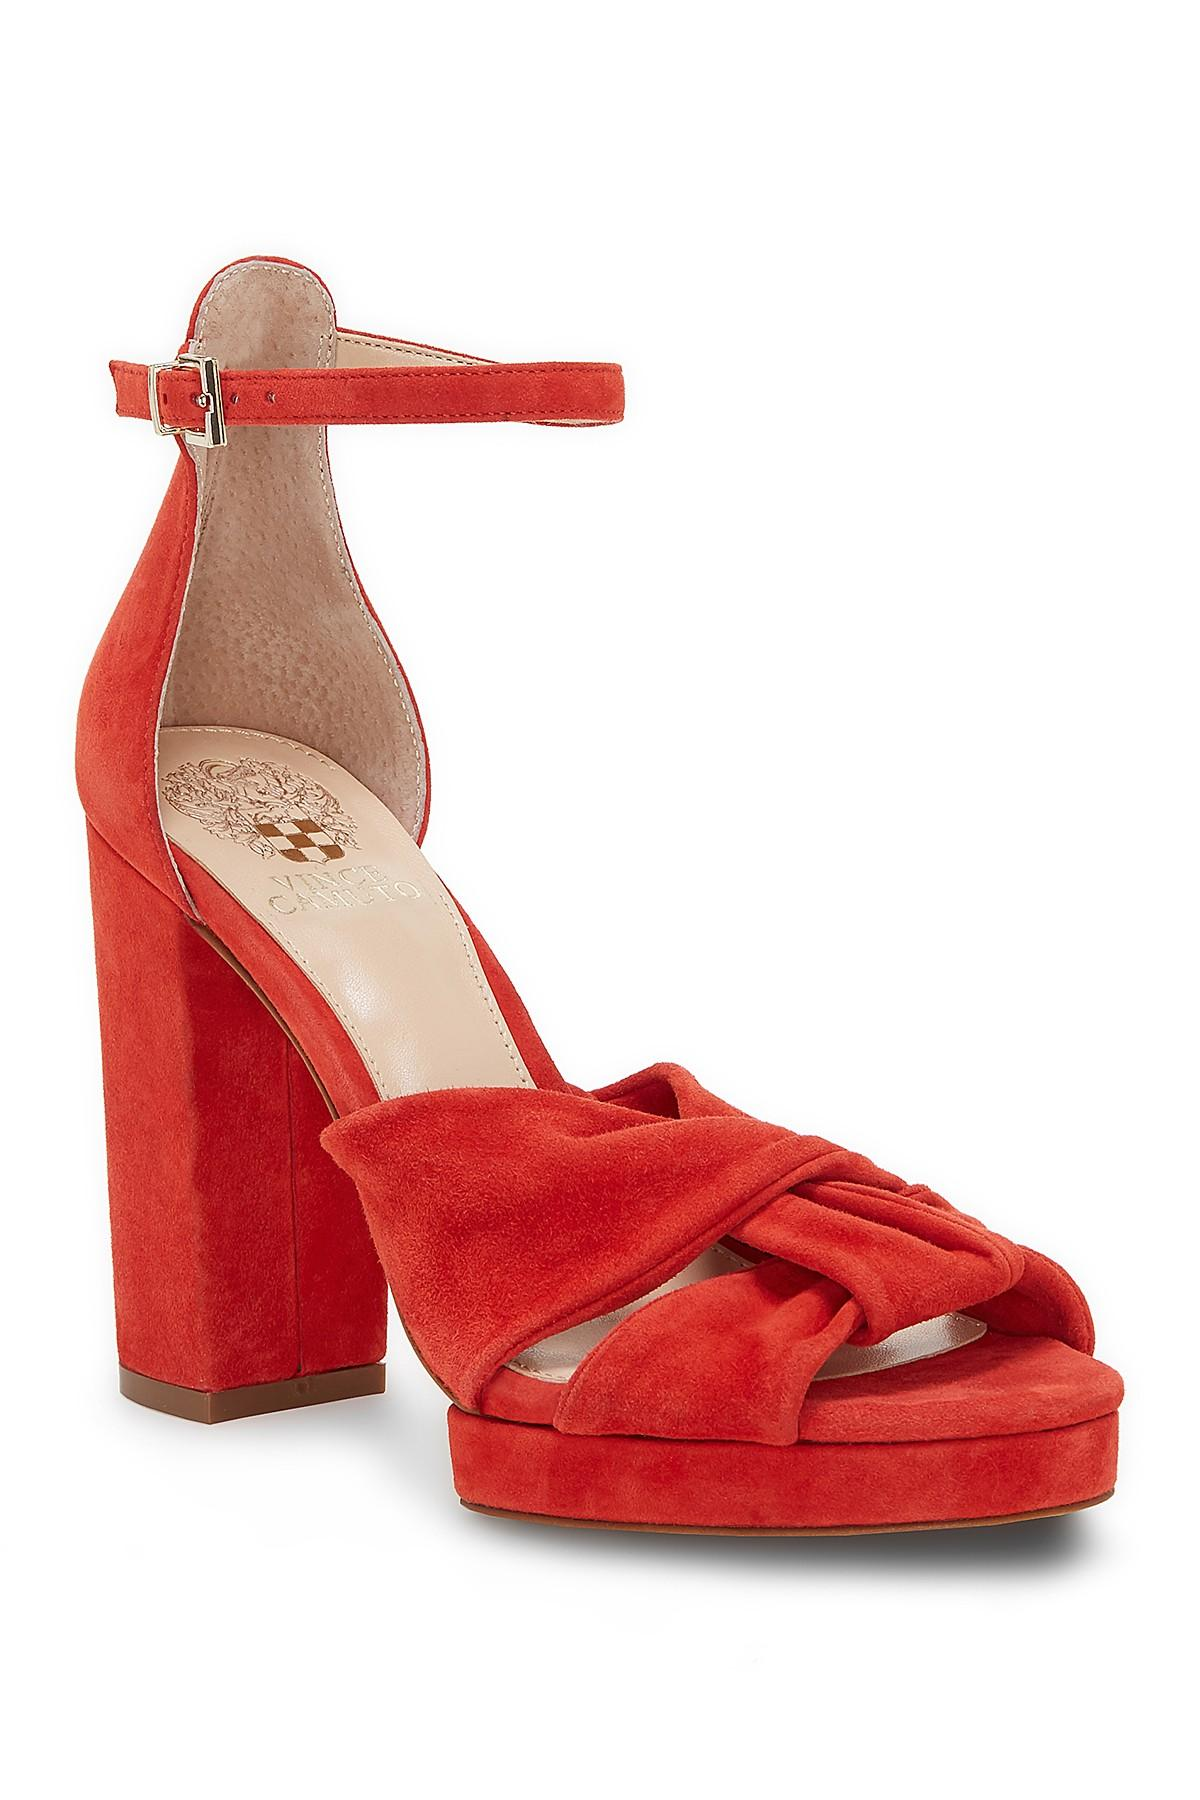 5c75733c491b Lyst - Vince Camuto Corlesta Sandal in Red